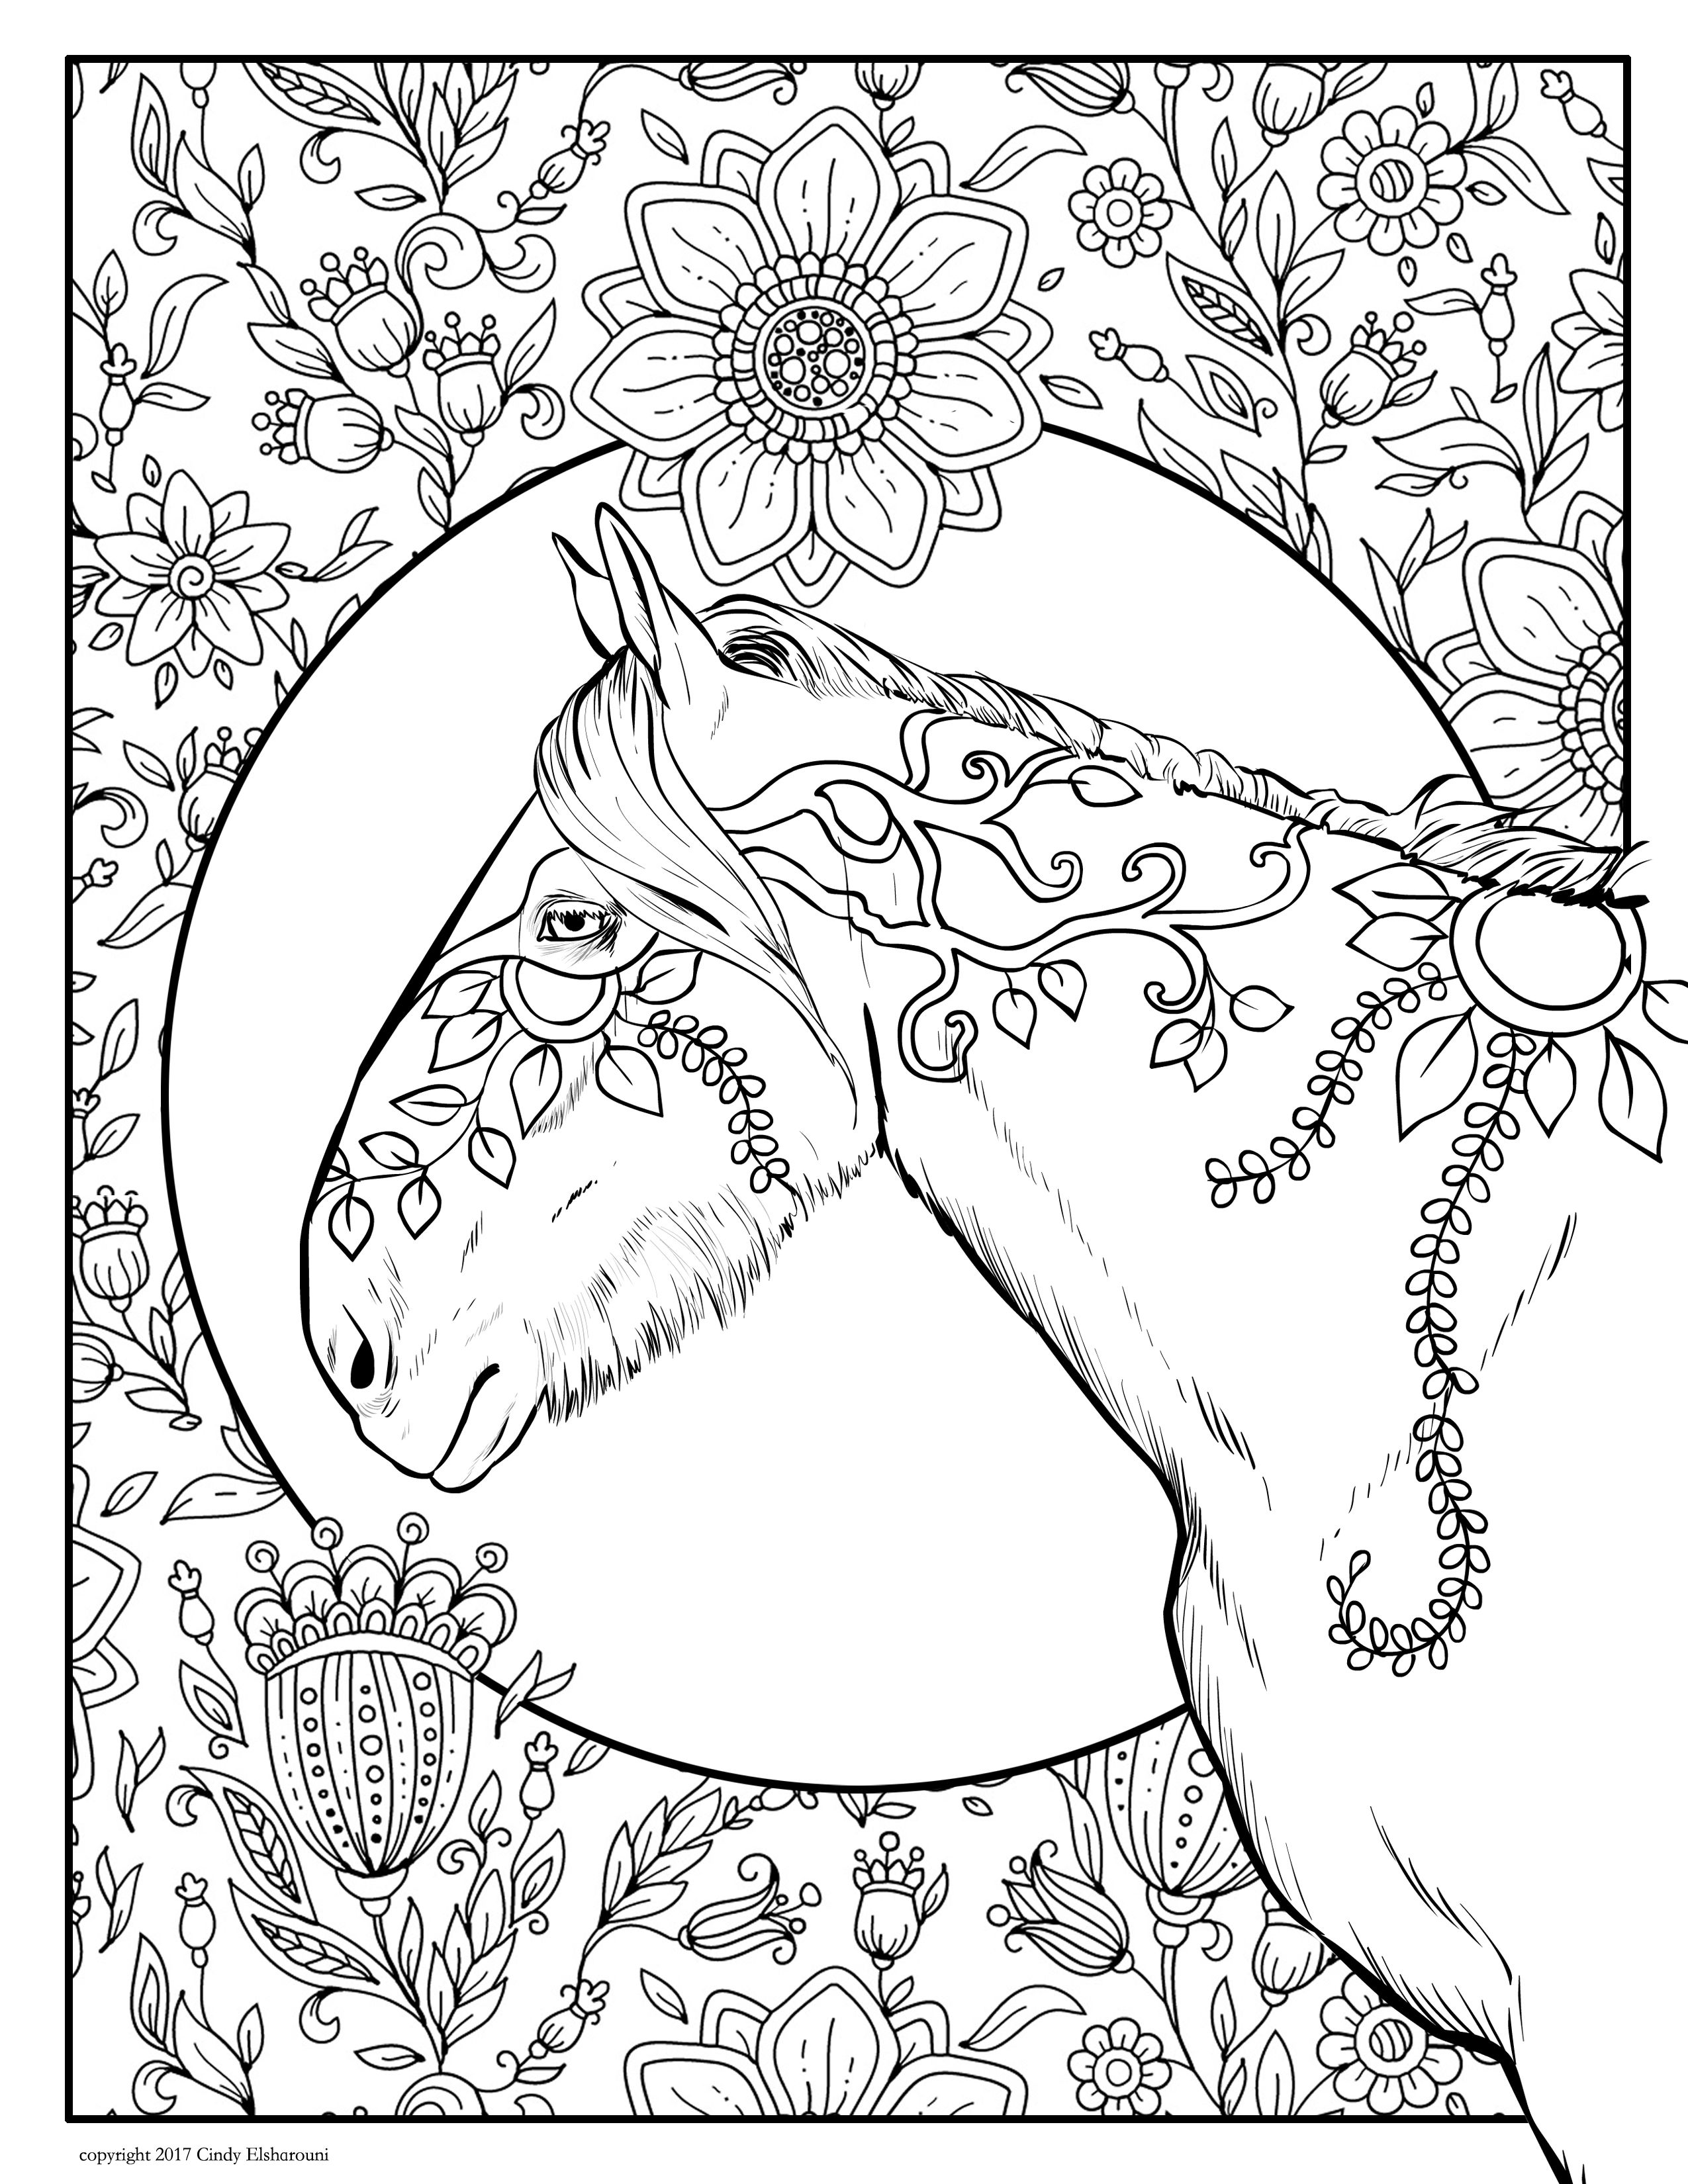 New Downloadable 14 Page Adult Coloring Book Full Of Horses And